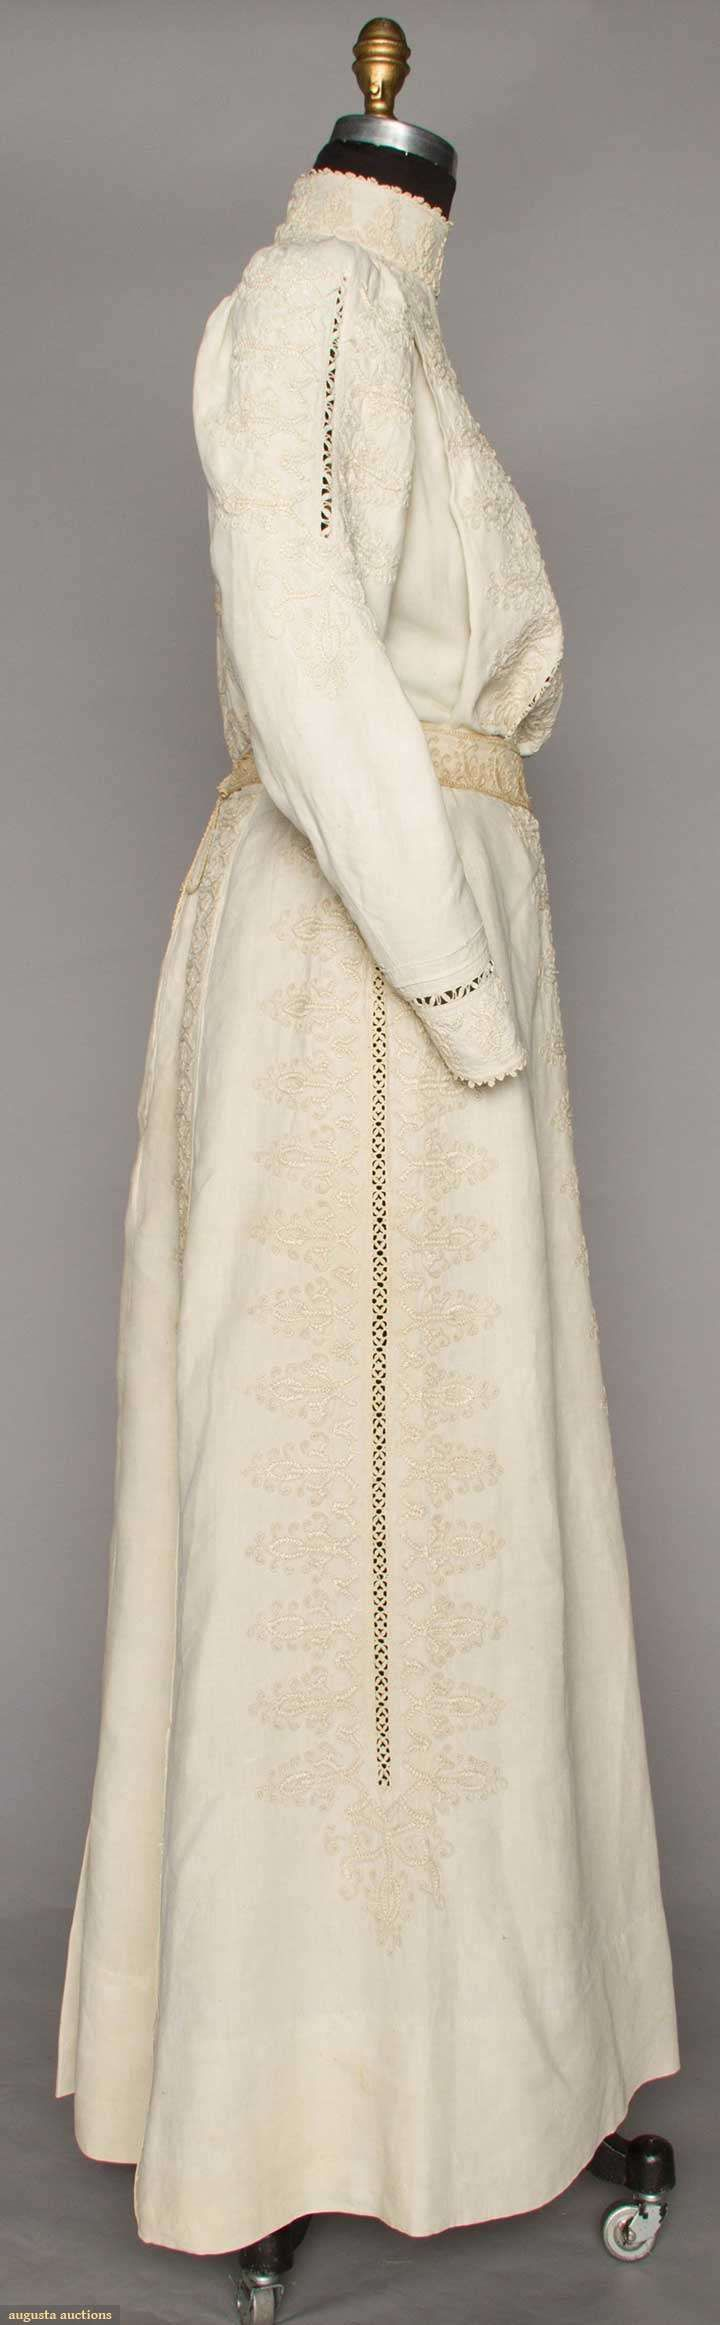 Dress (image 2) | 1906 | embroidered linen | Augusta Auctions | April 20, 2016/Lot 236